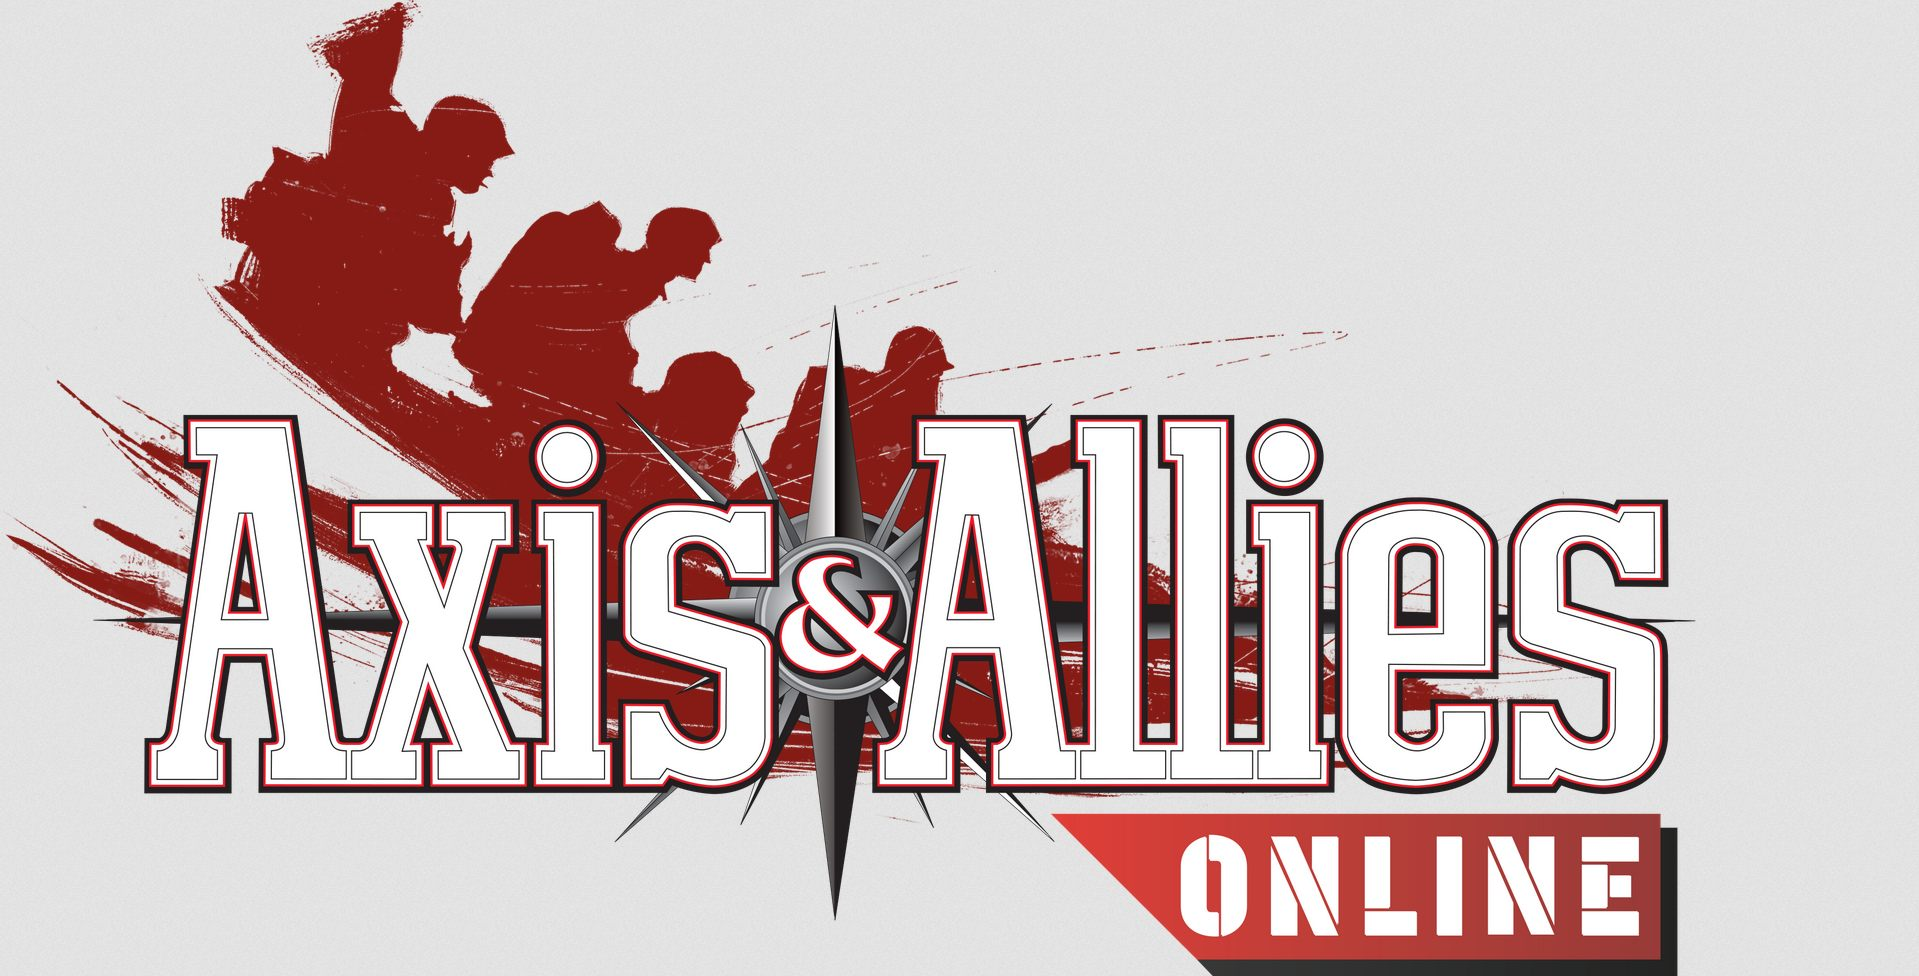 Axis and Allies Online digital tabletop board game